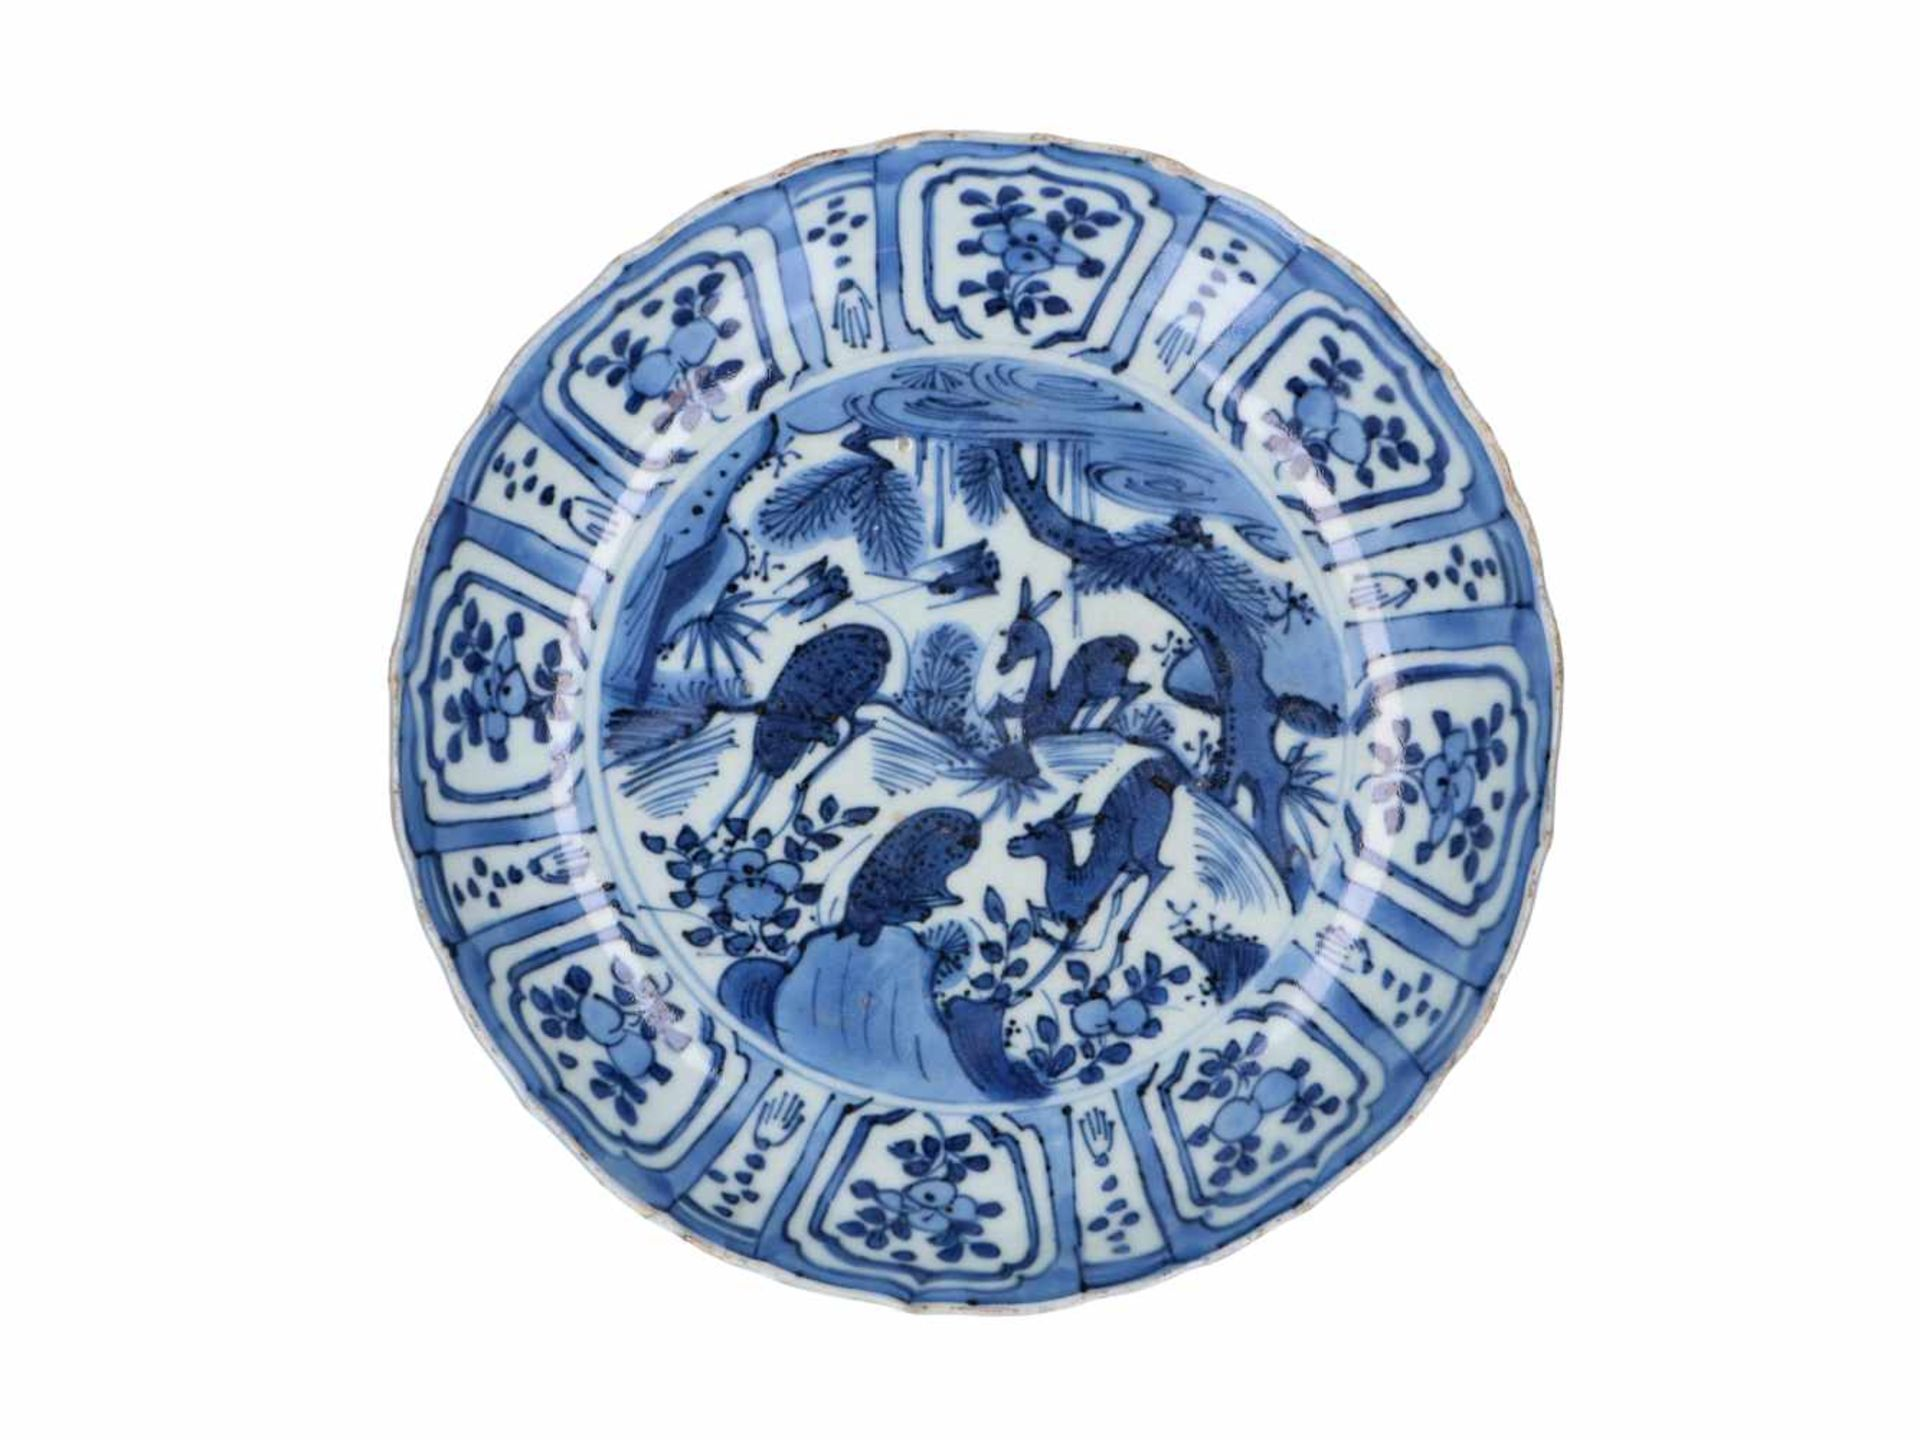 A blue and white 'kraak' porcelain deep dish, decorated with deer, birds and flowers. Unmarked.